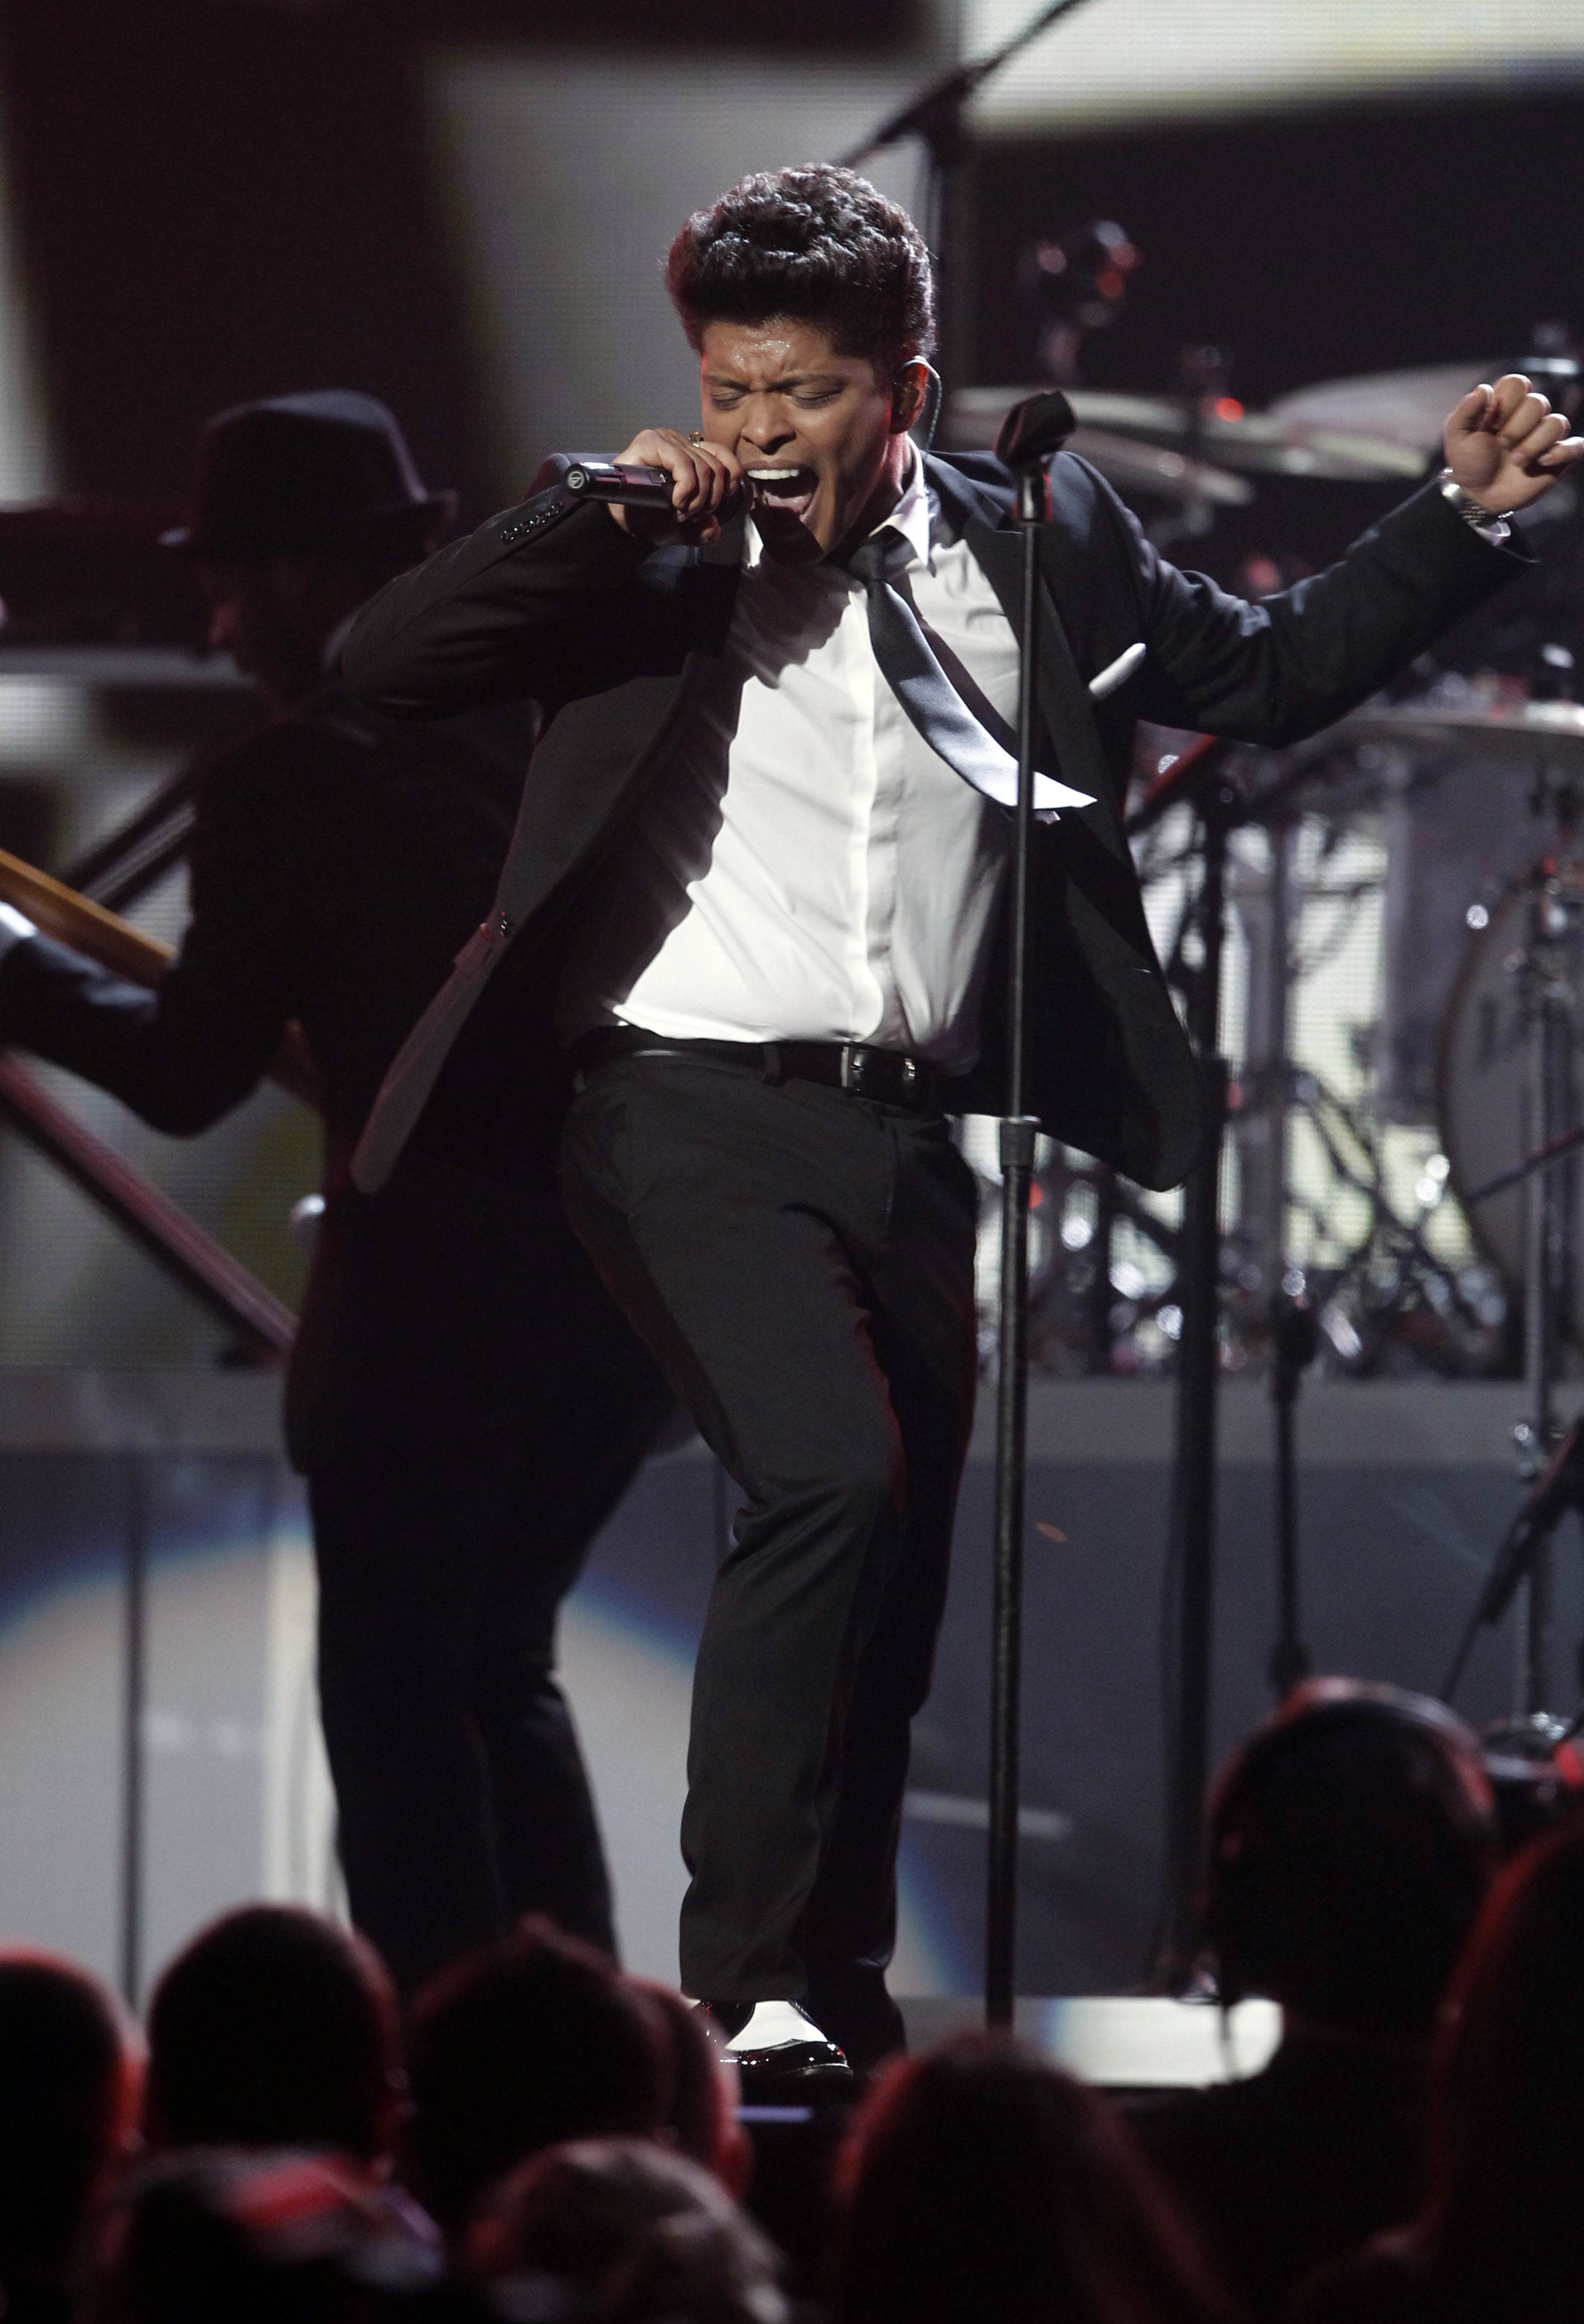 Bruno Mars performs at the 53rd annual Grammy Awards on Sunday, Feb. 13, 2011, in Los Angeles.